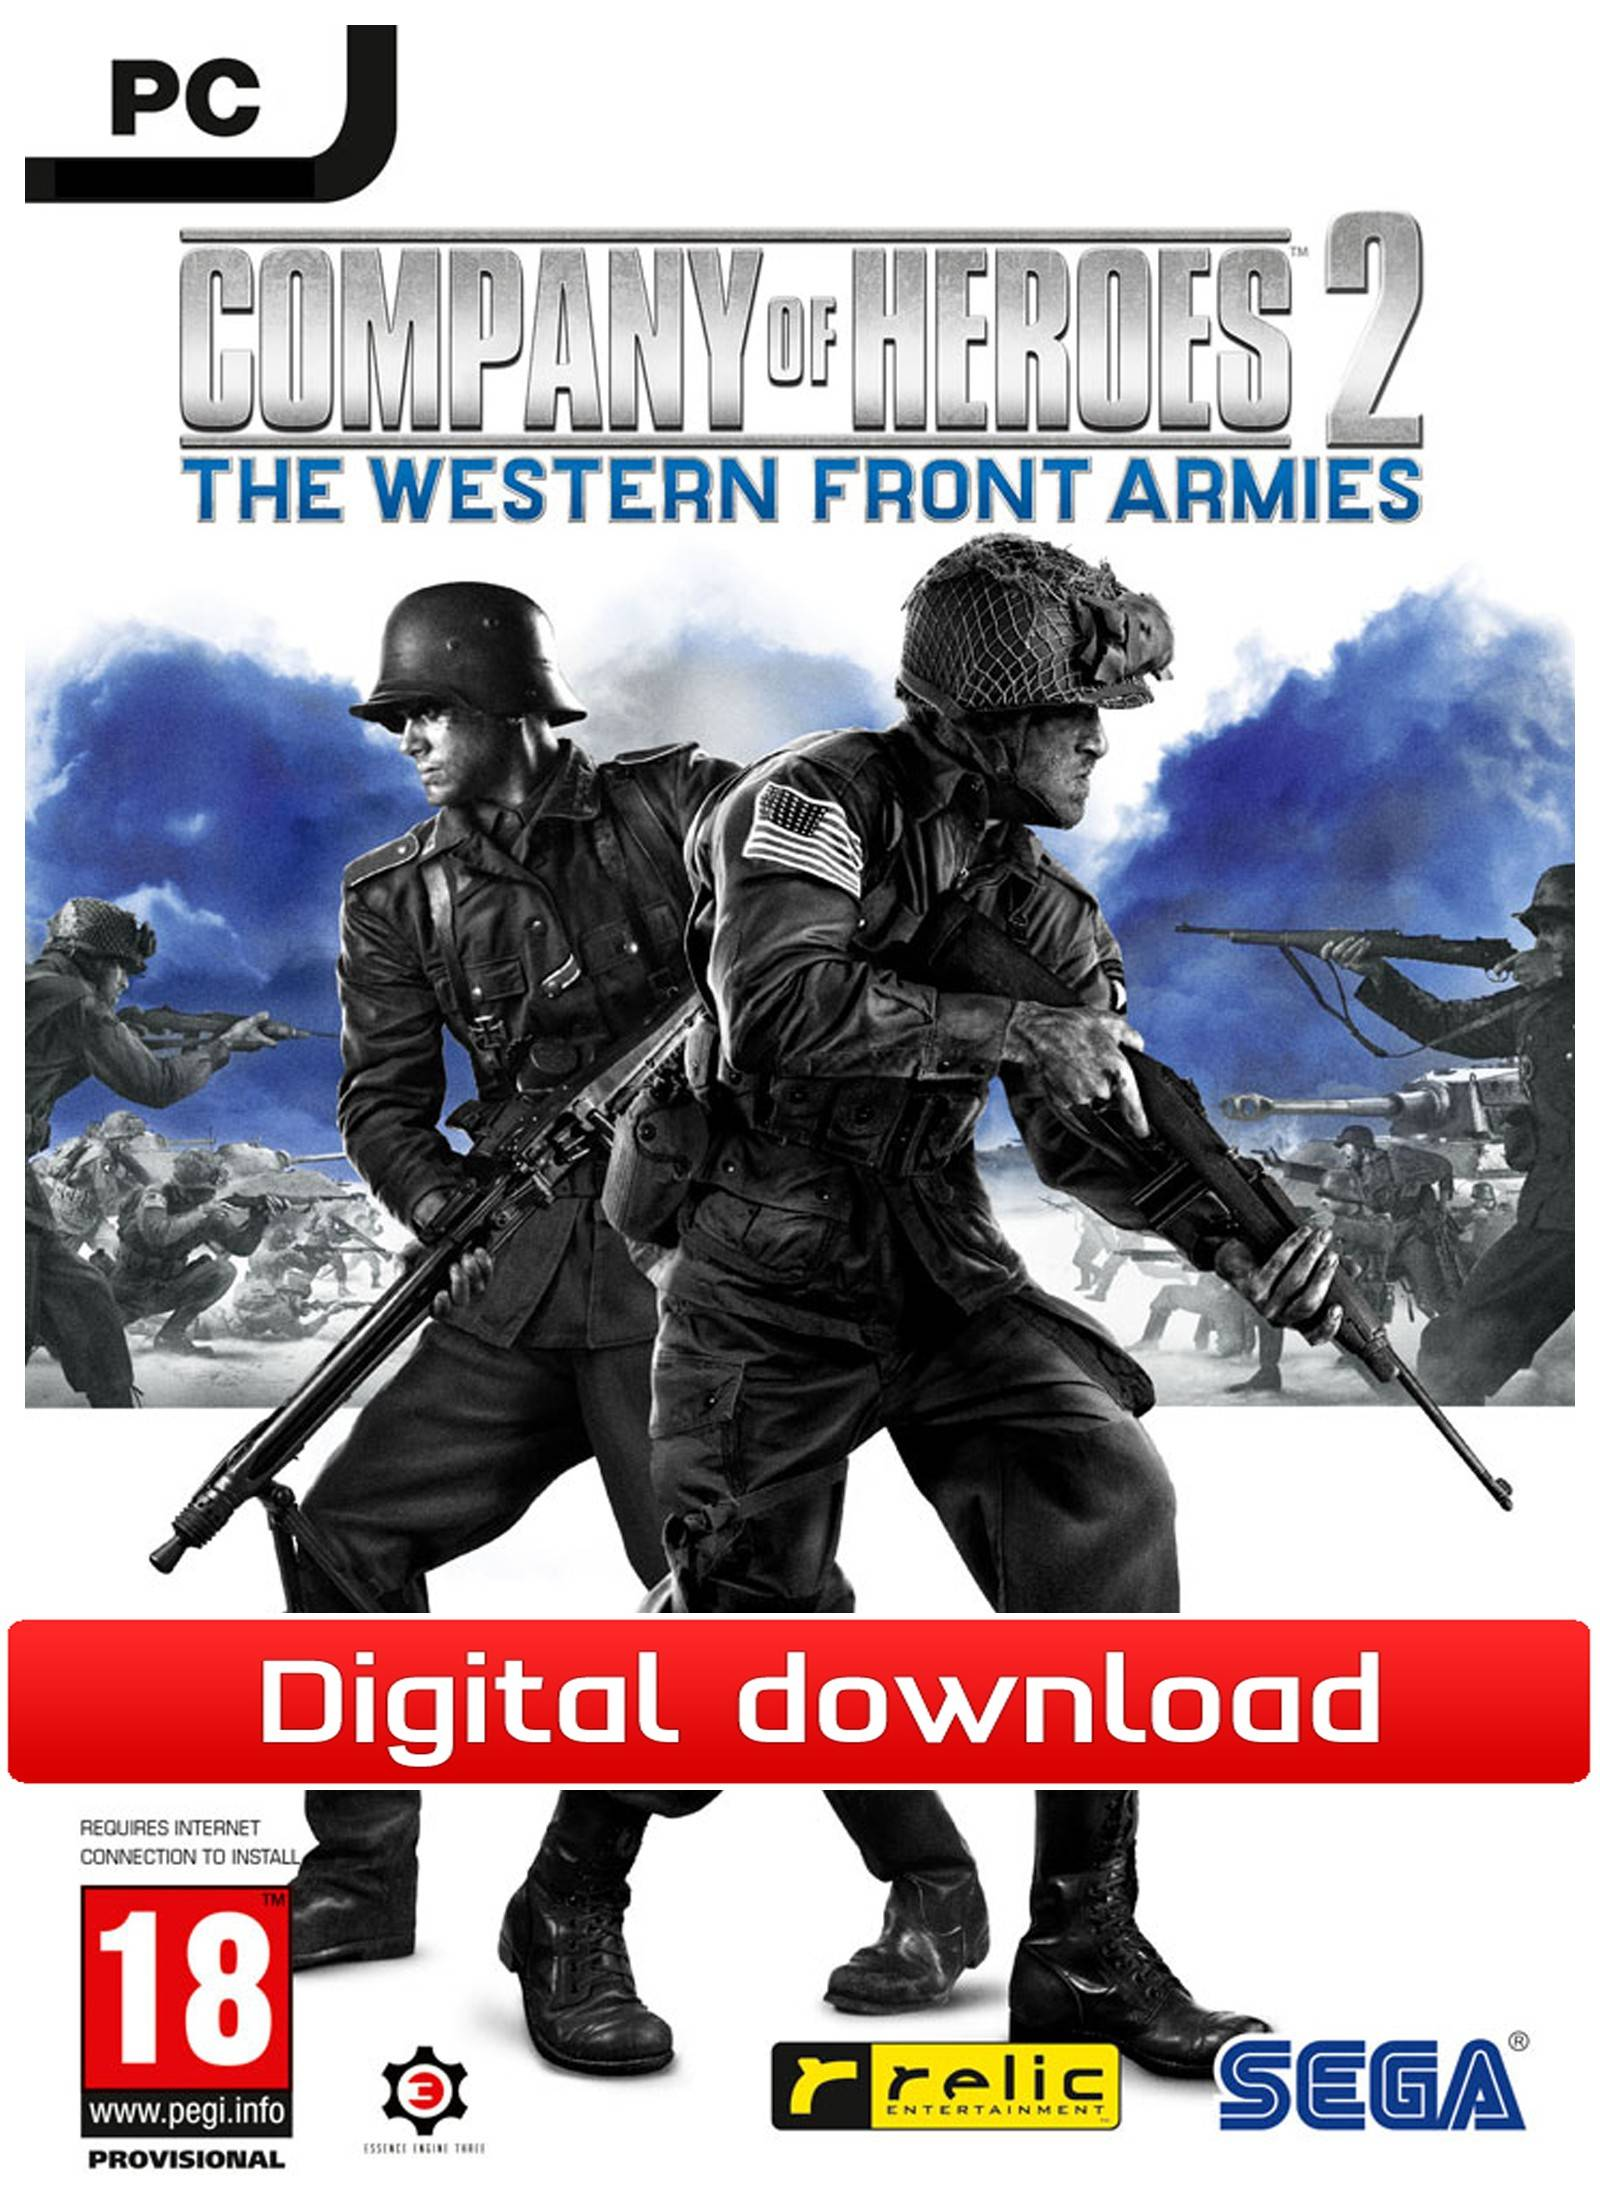 Sega Company of Heroes 2: The Western Front Armies (Downl)